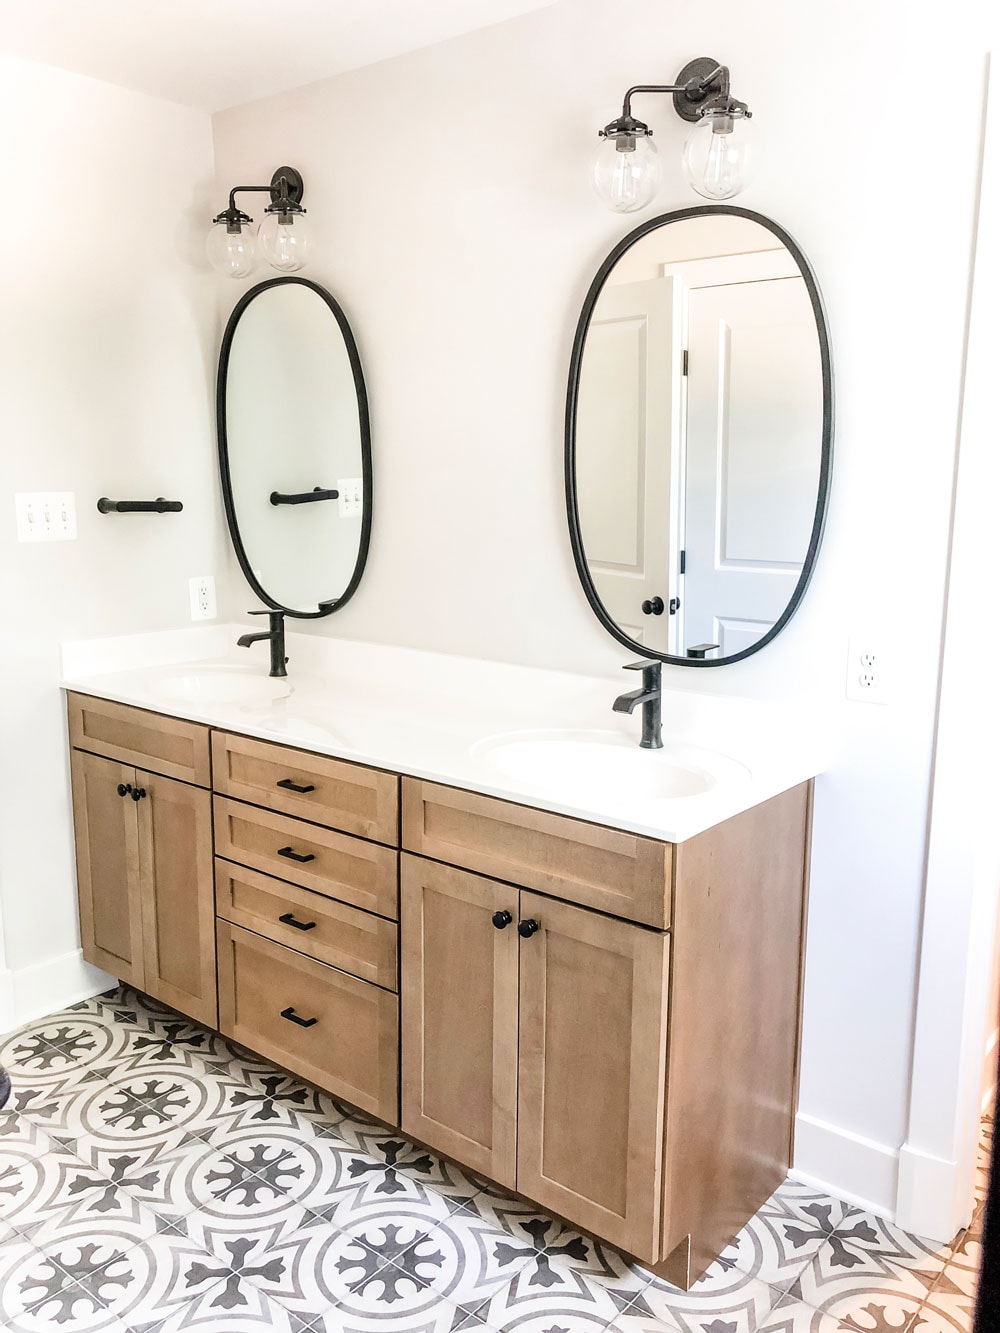 Custom home tour photos. This photo shows the master bathroom with a wood double vanity. The counters are a solid white marble countertop with two sinks. There are two black oval mirrors (one above each sink). There are two black faucets and black hardware on the cabinets. There are also two black lights with glass globes above each mirror.